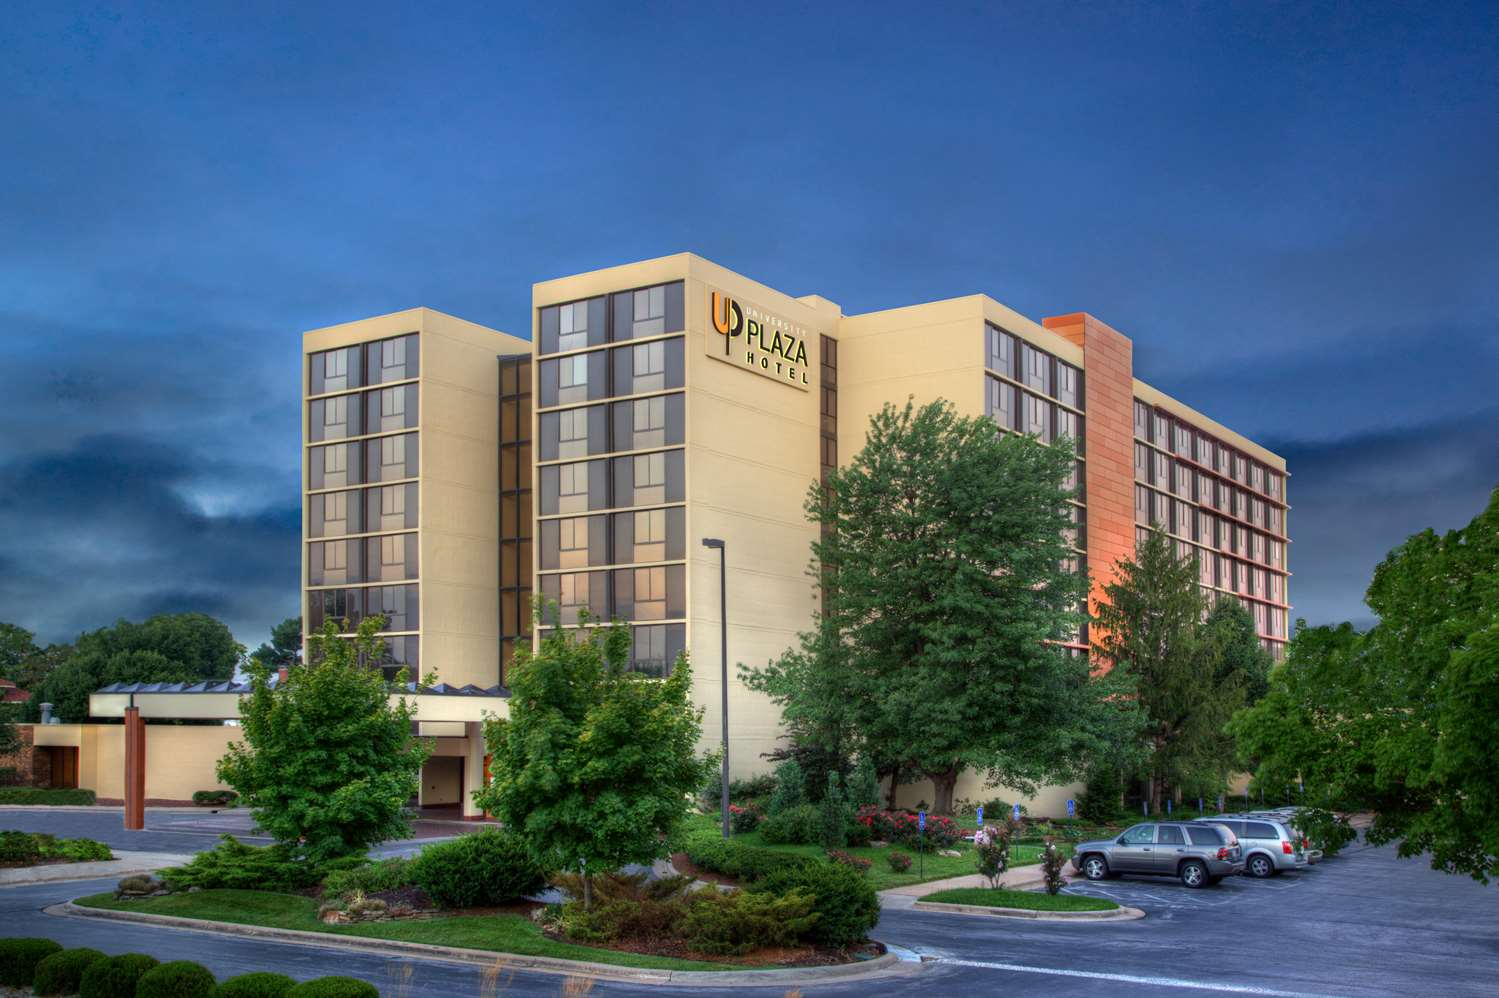 University Plaza Hotel & Conference Center Springfield